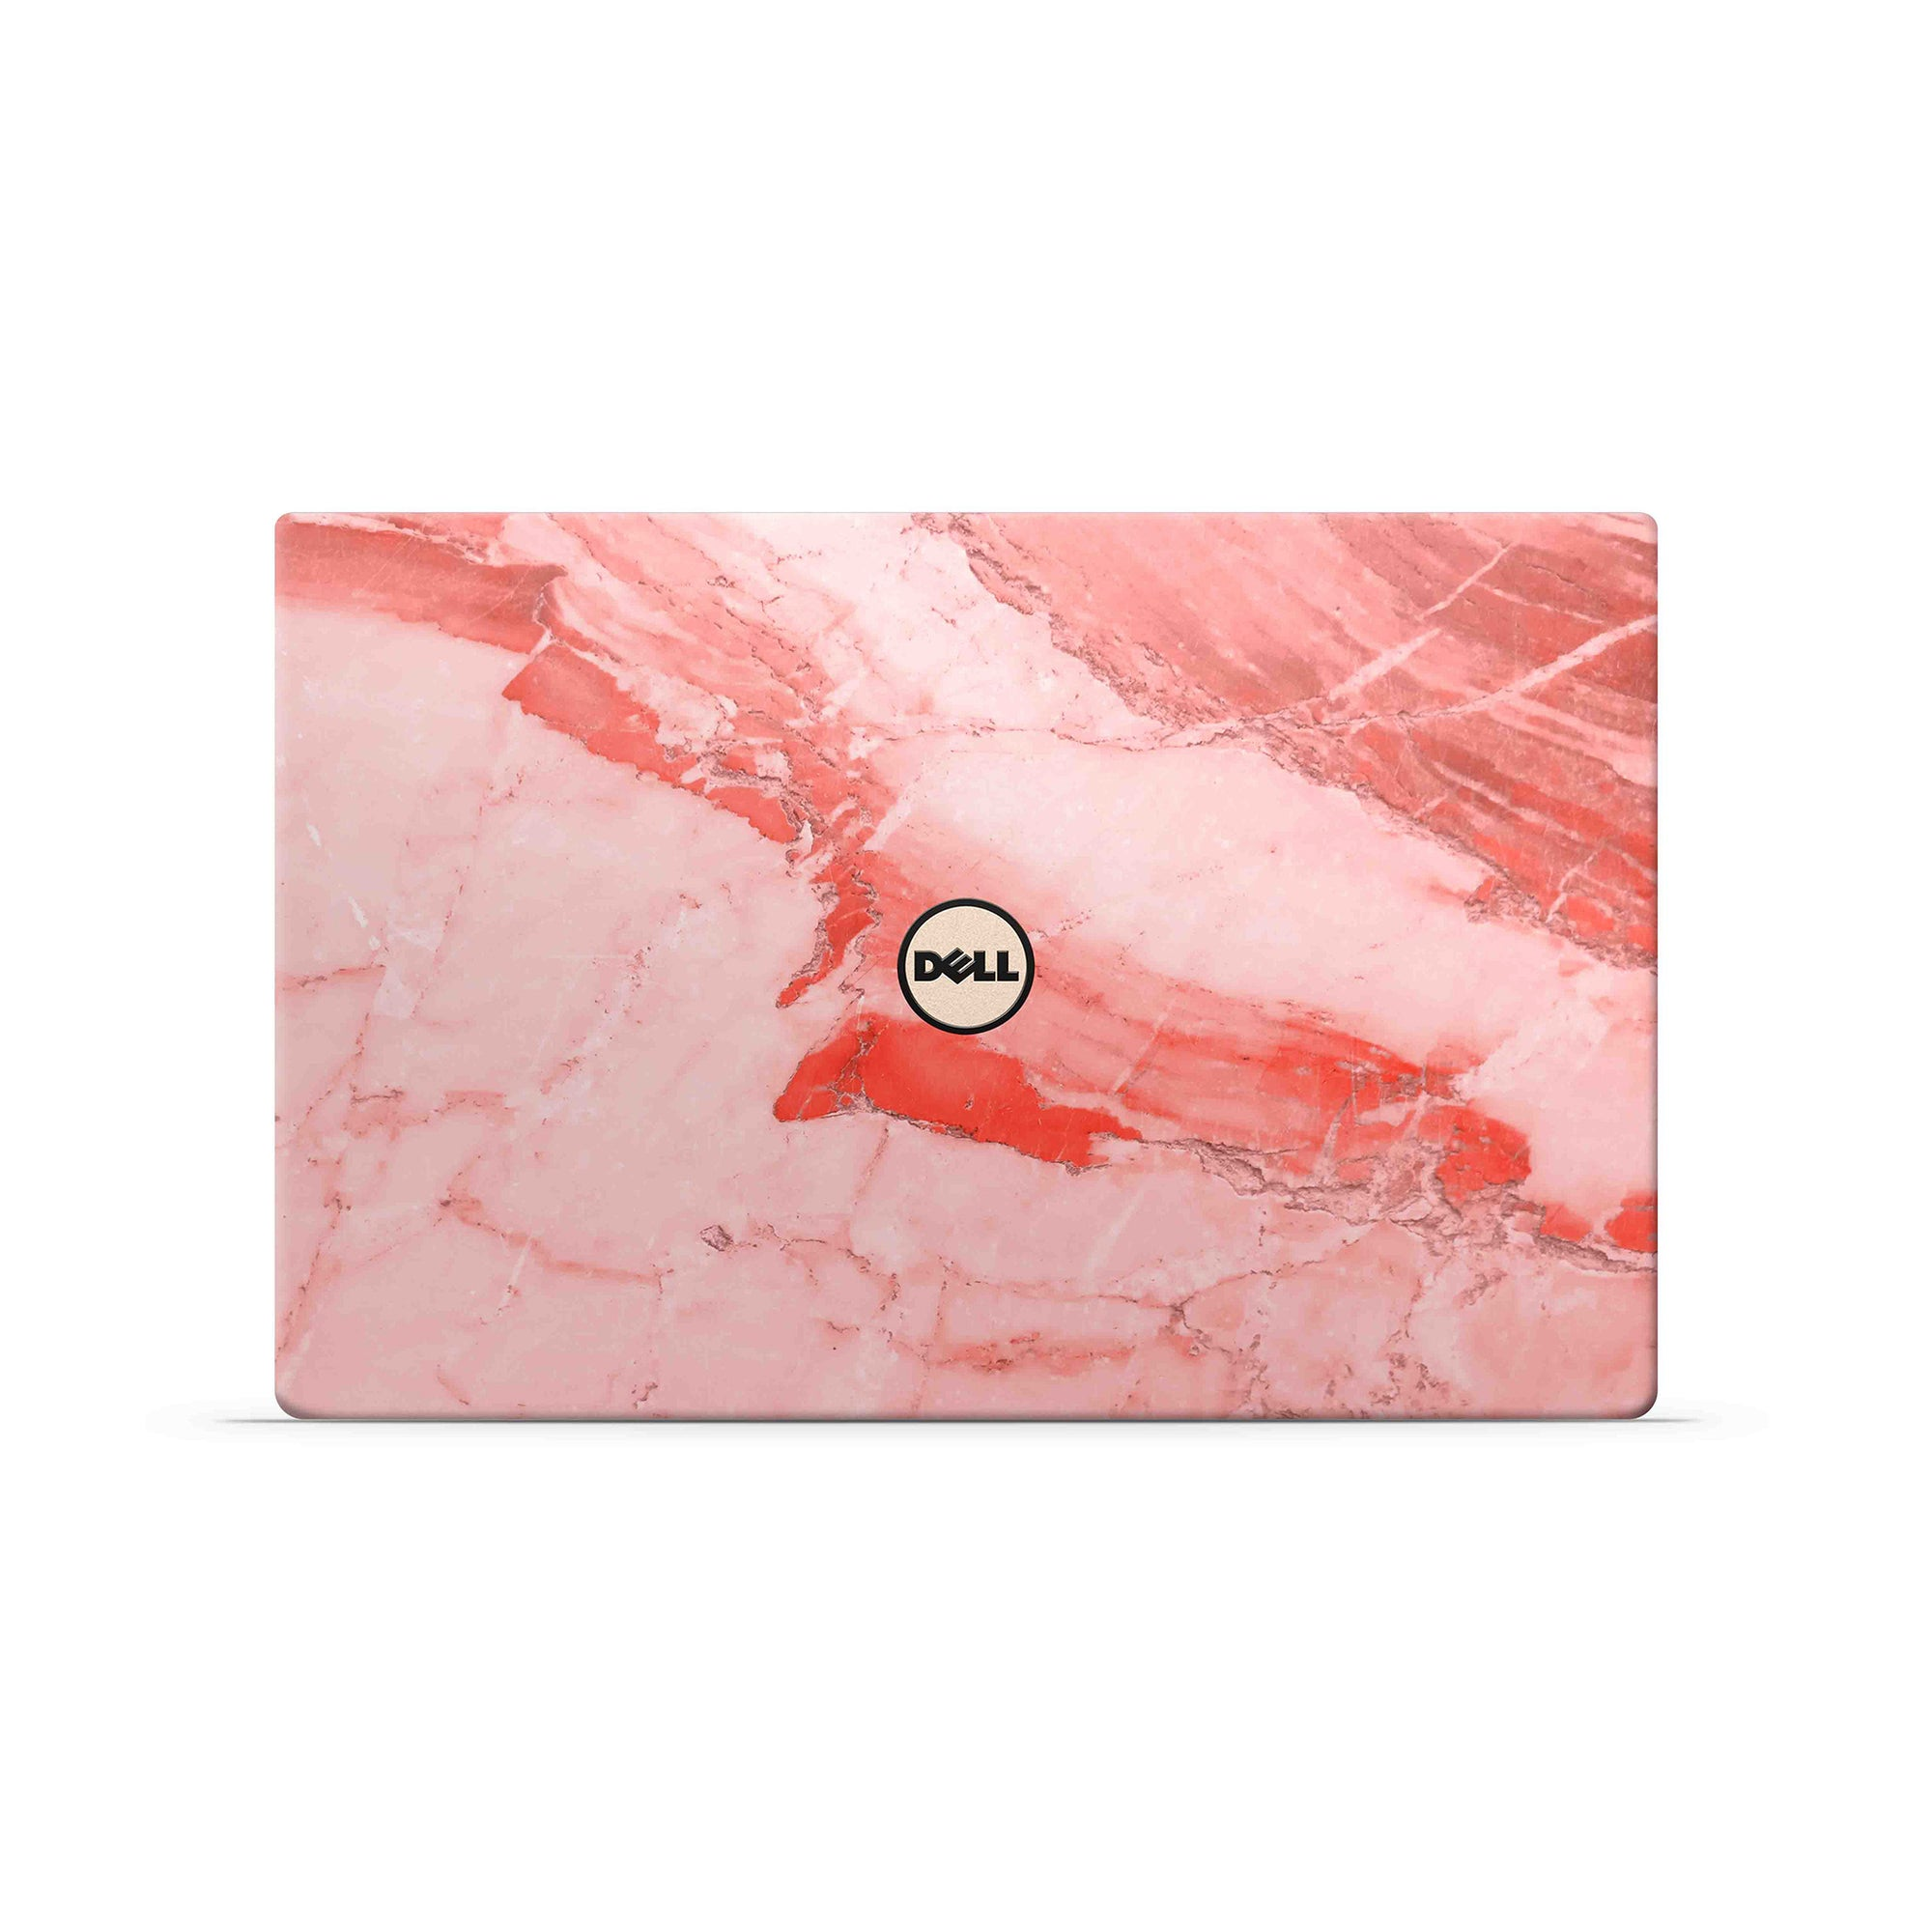 Coral Marble XPS 15 (9500) Skin